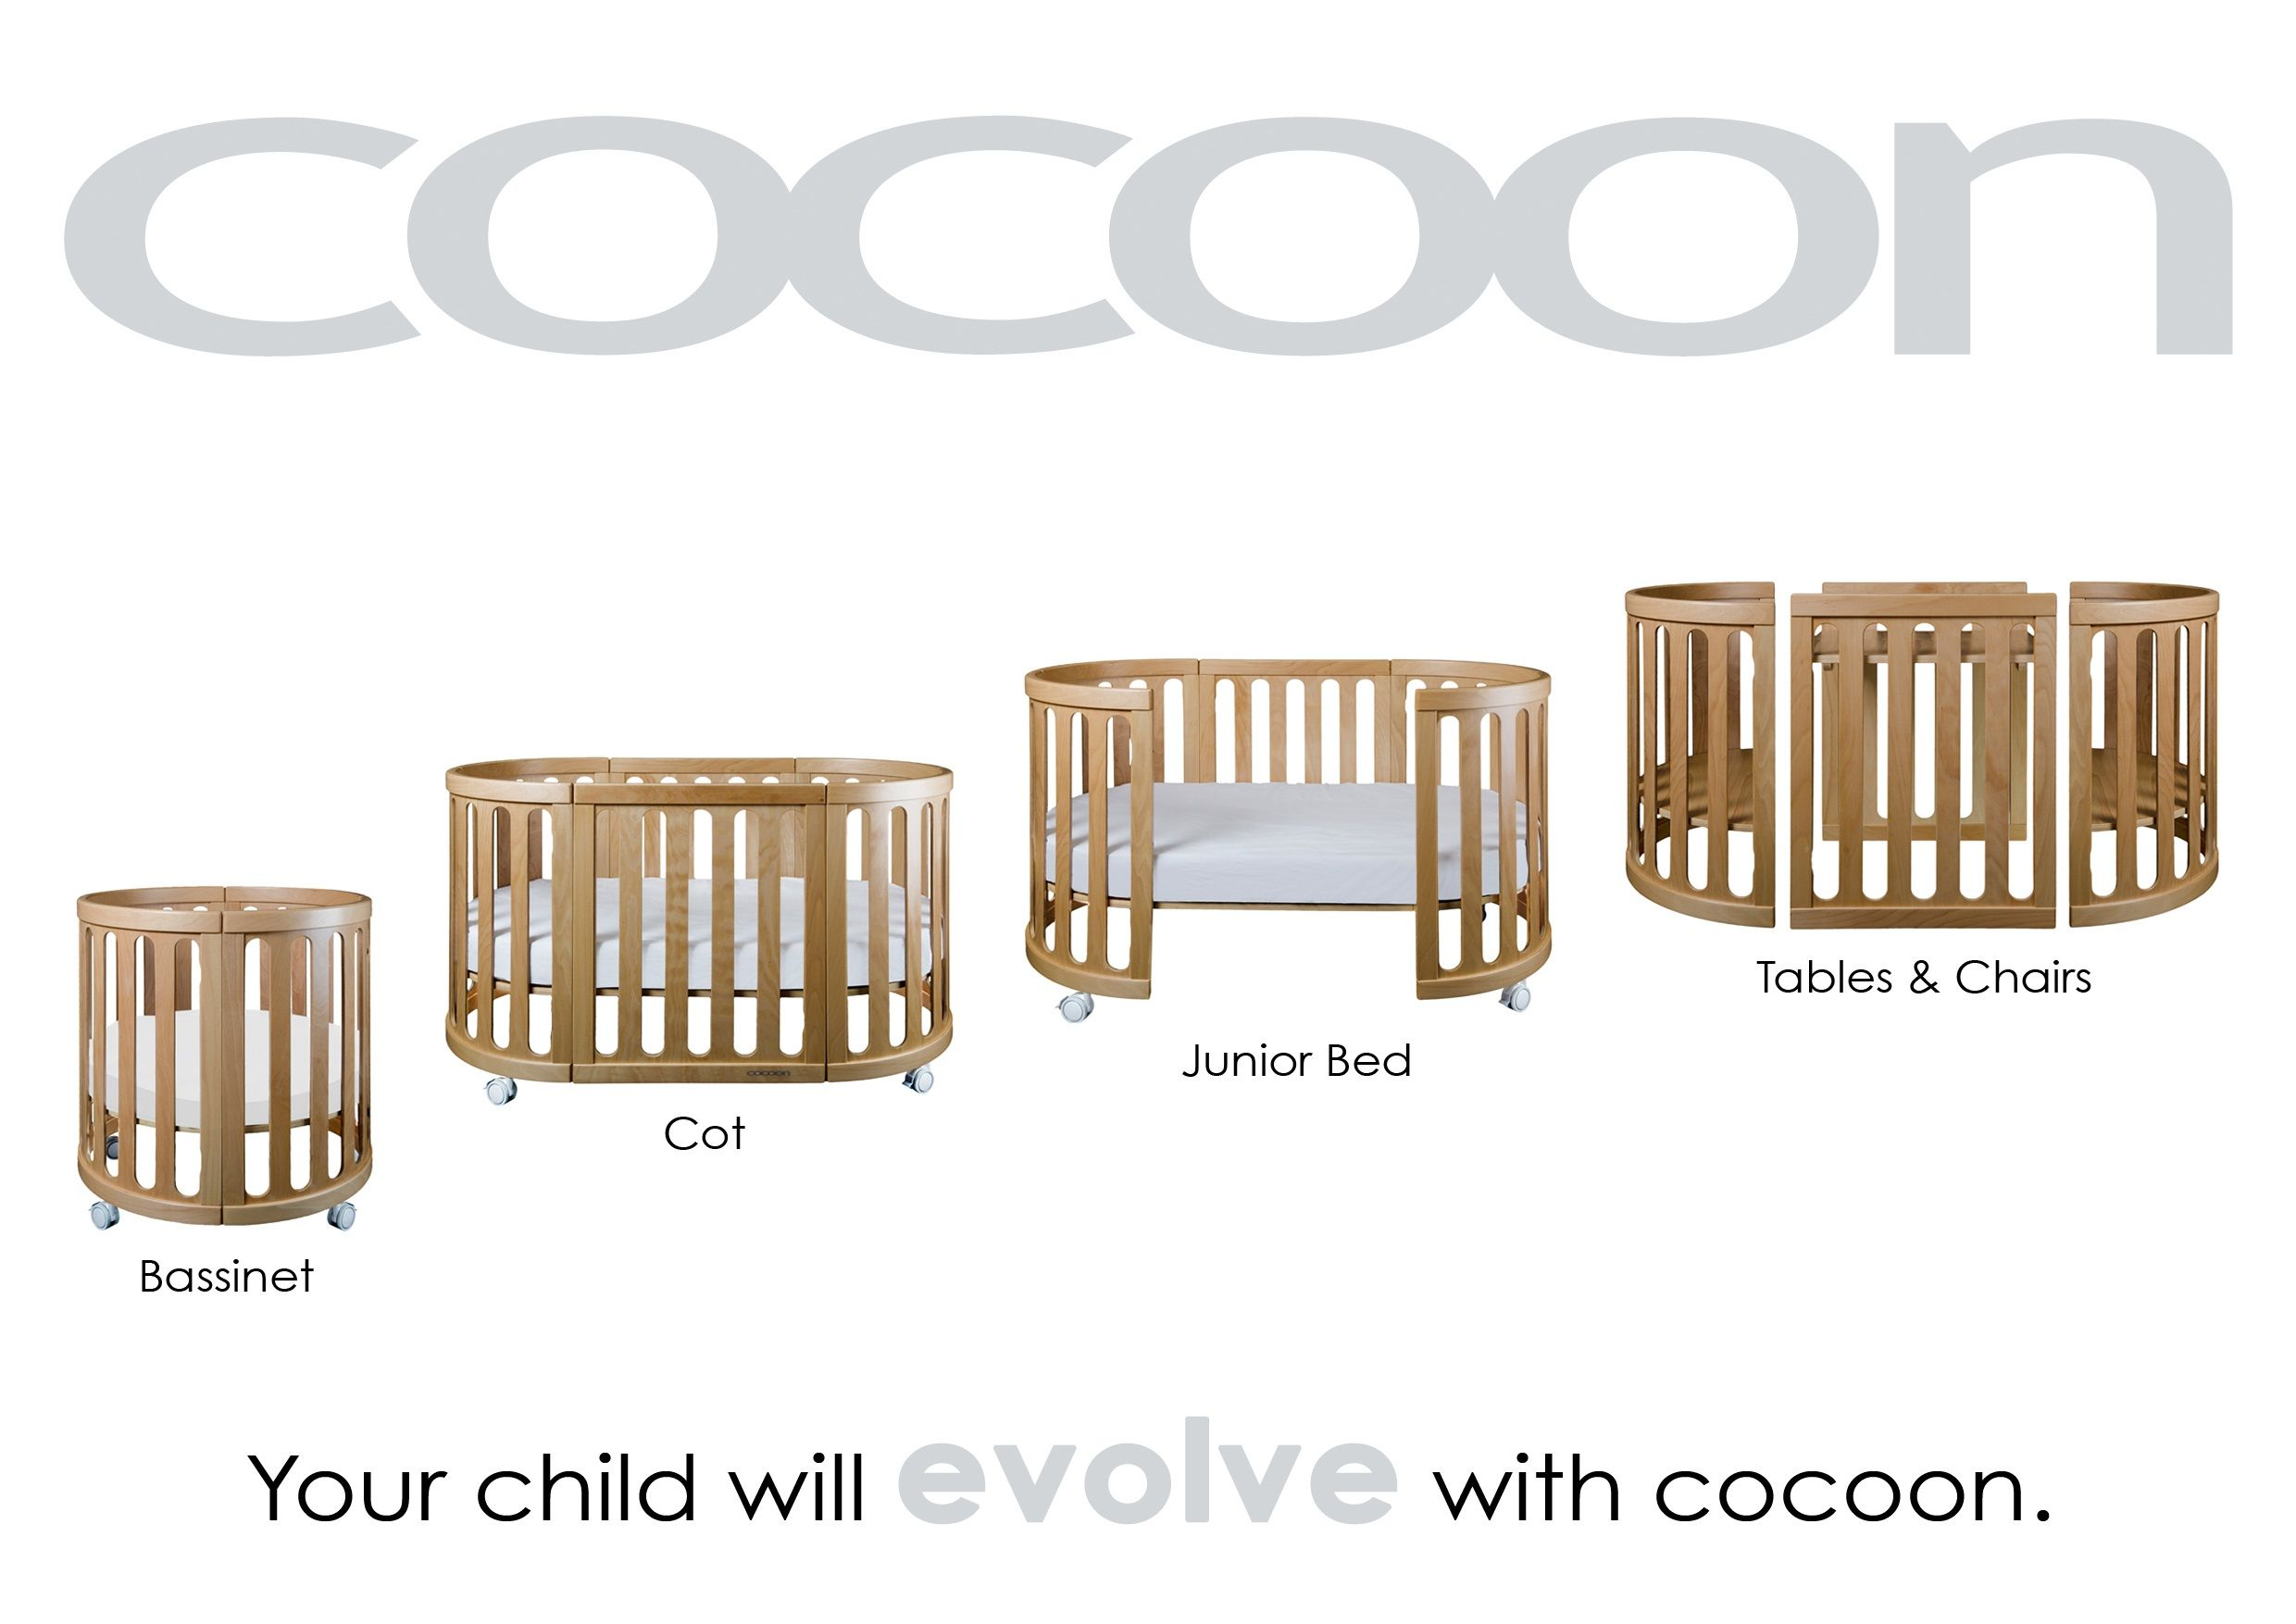 Baby cribs york region - Cocoon Nest Cot Junior Bedbaby